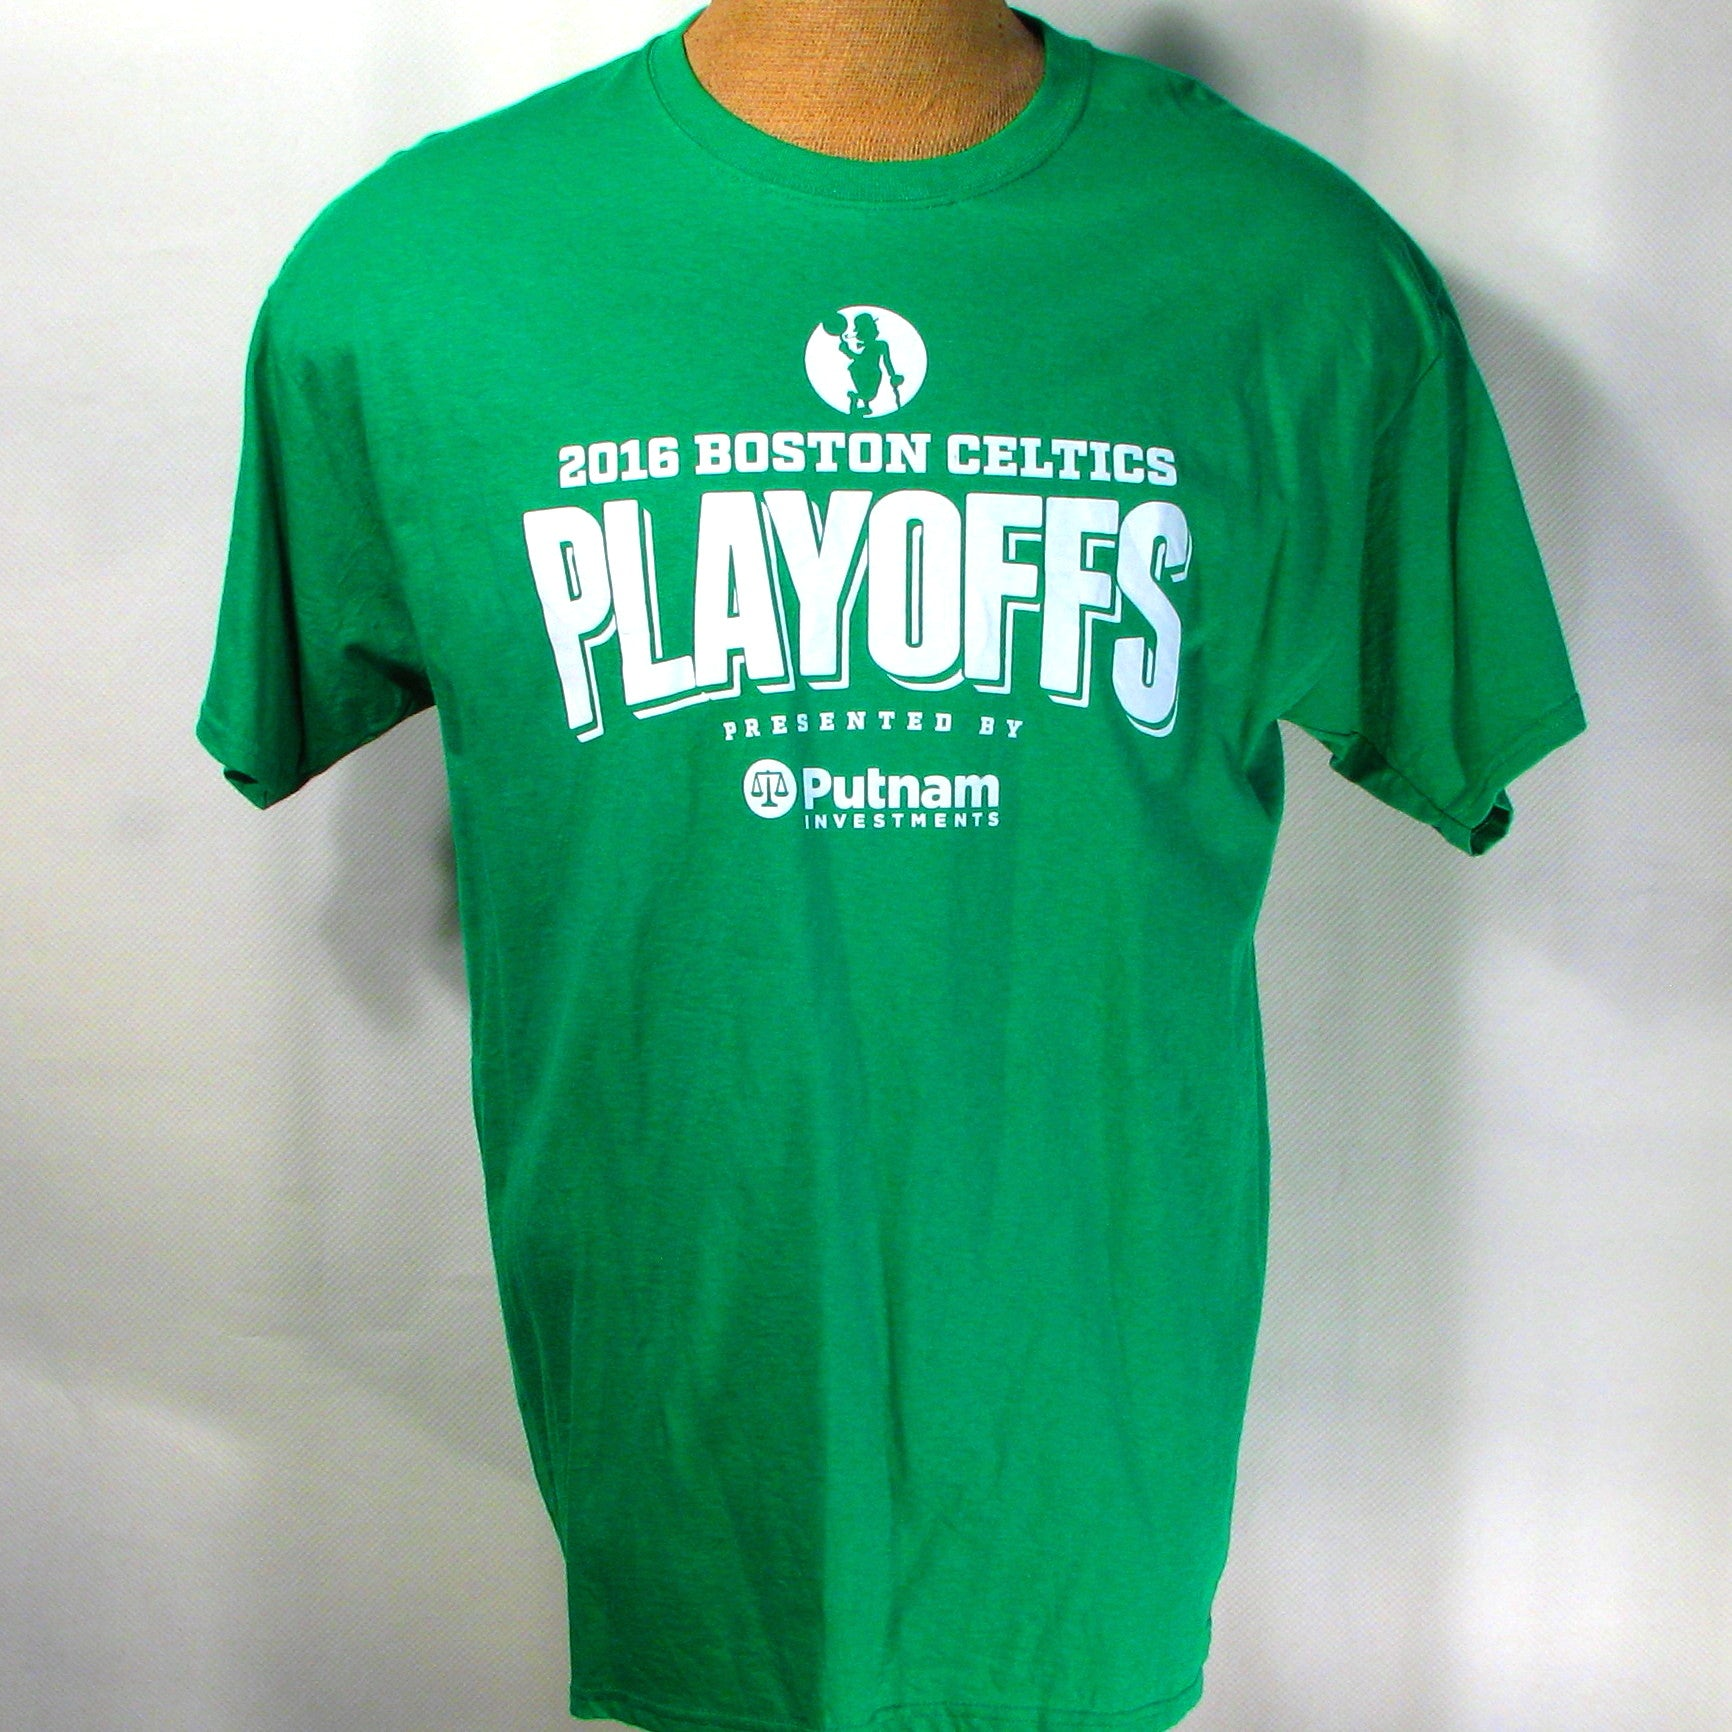 Boston Celtics 2016 Playoffs T-Shirt